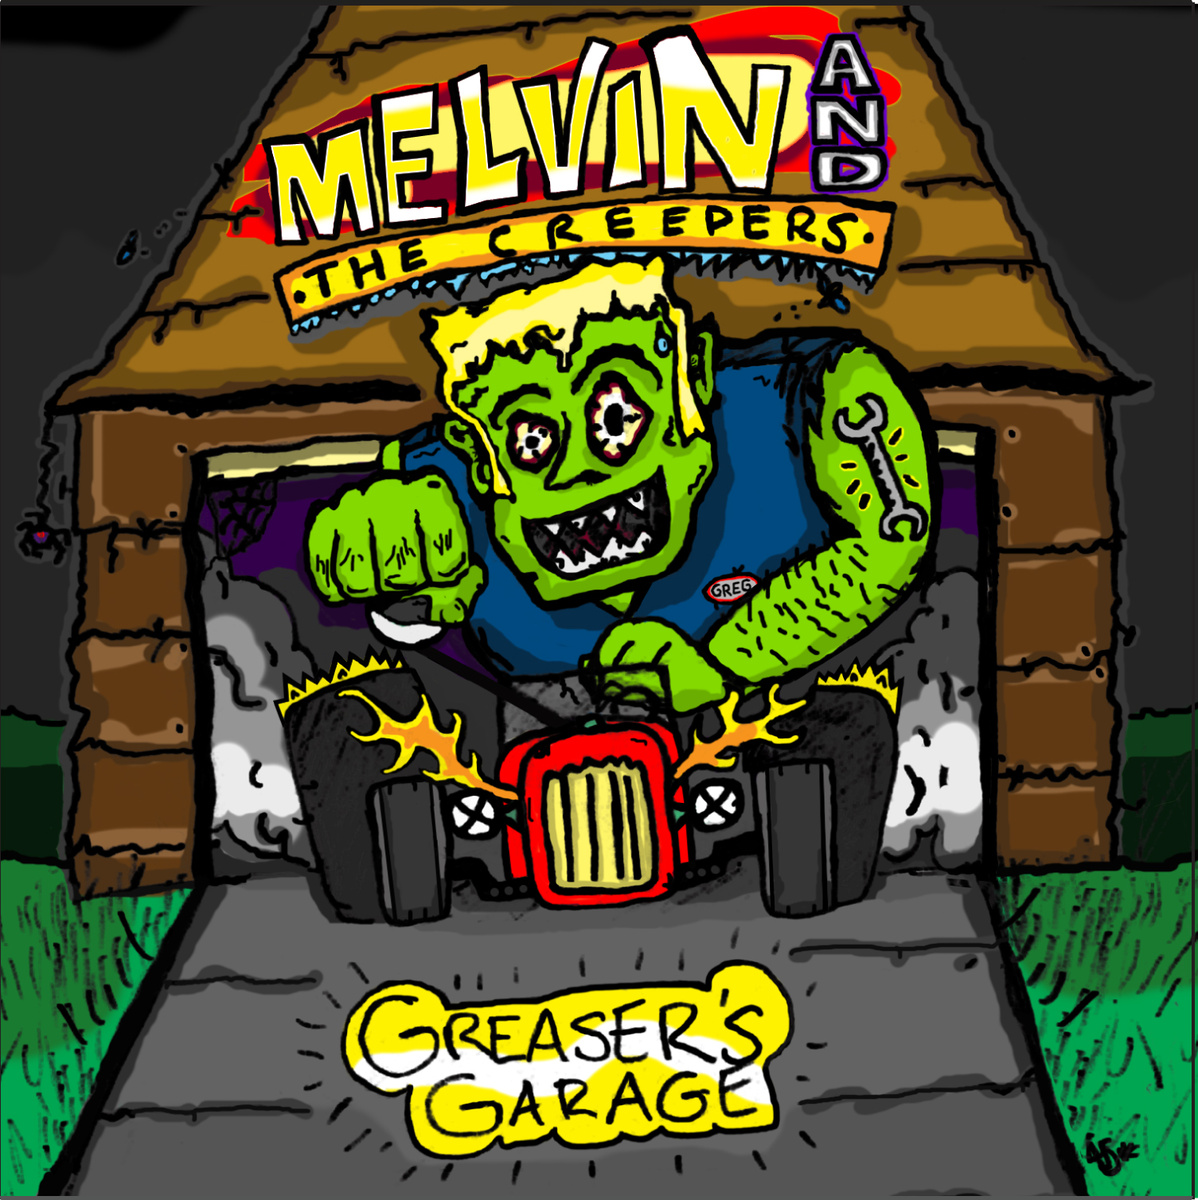 Melvin and the Creepers - Greaser's Garage